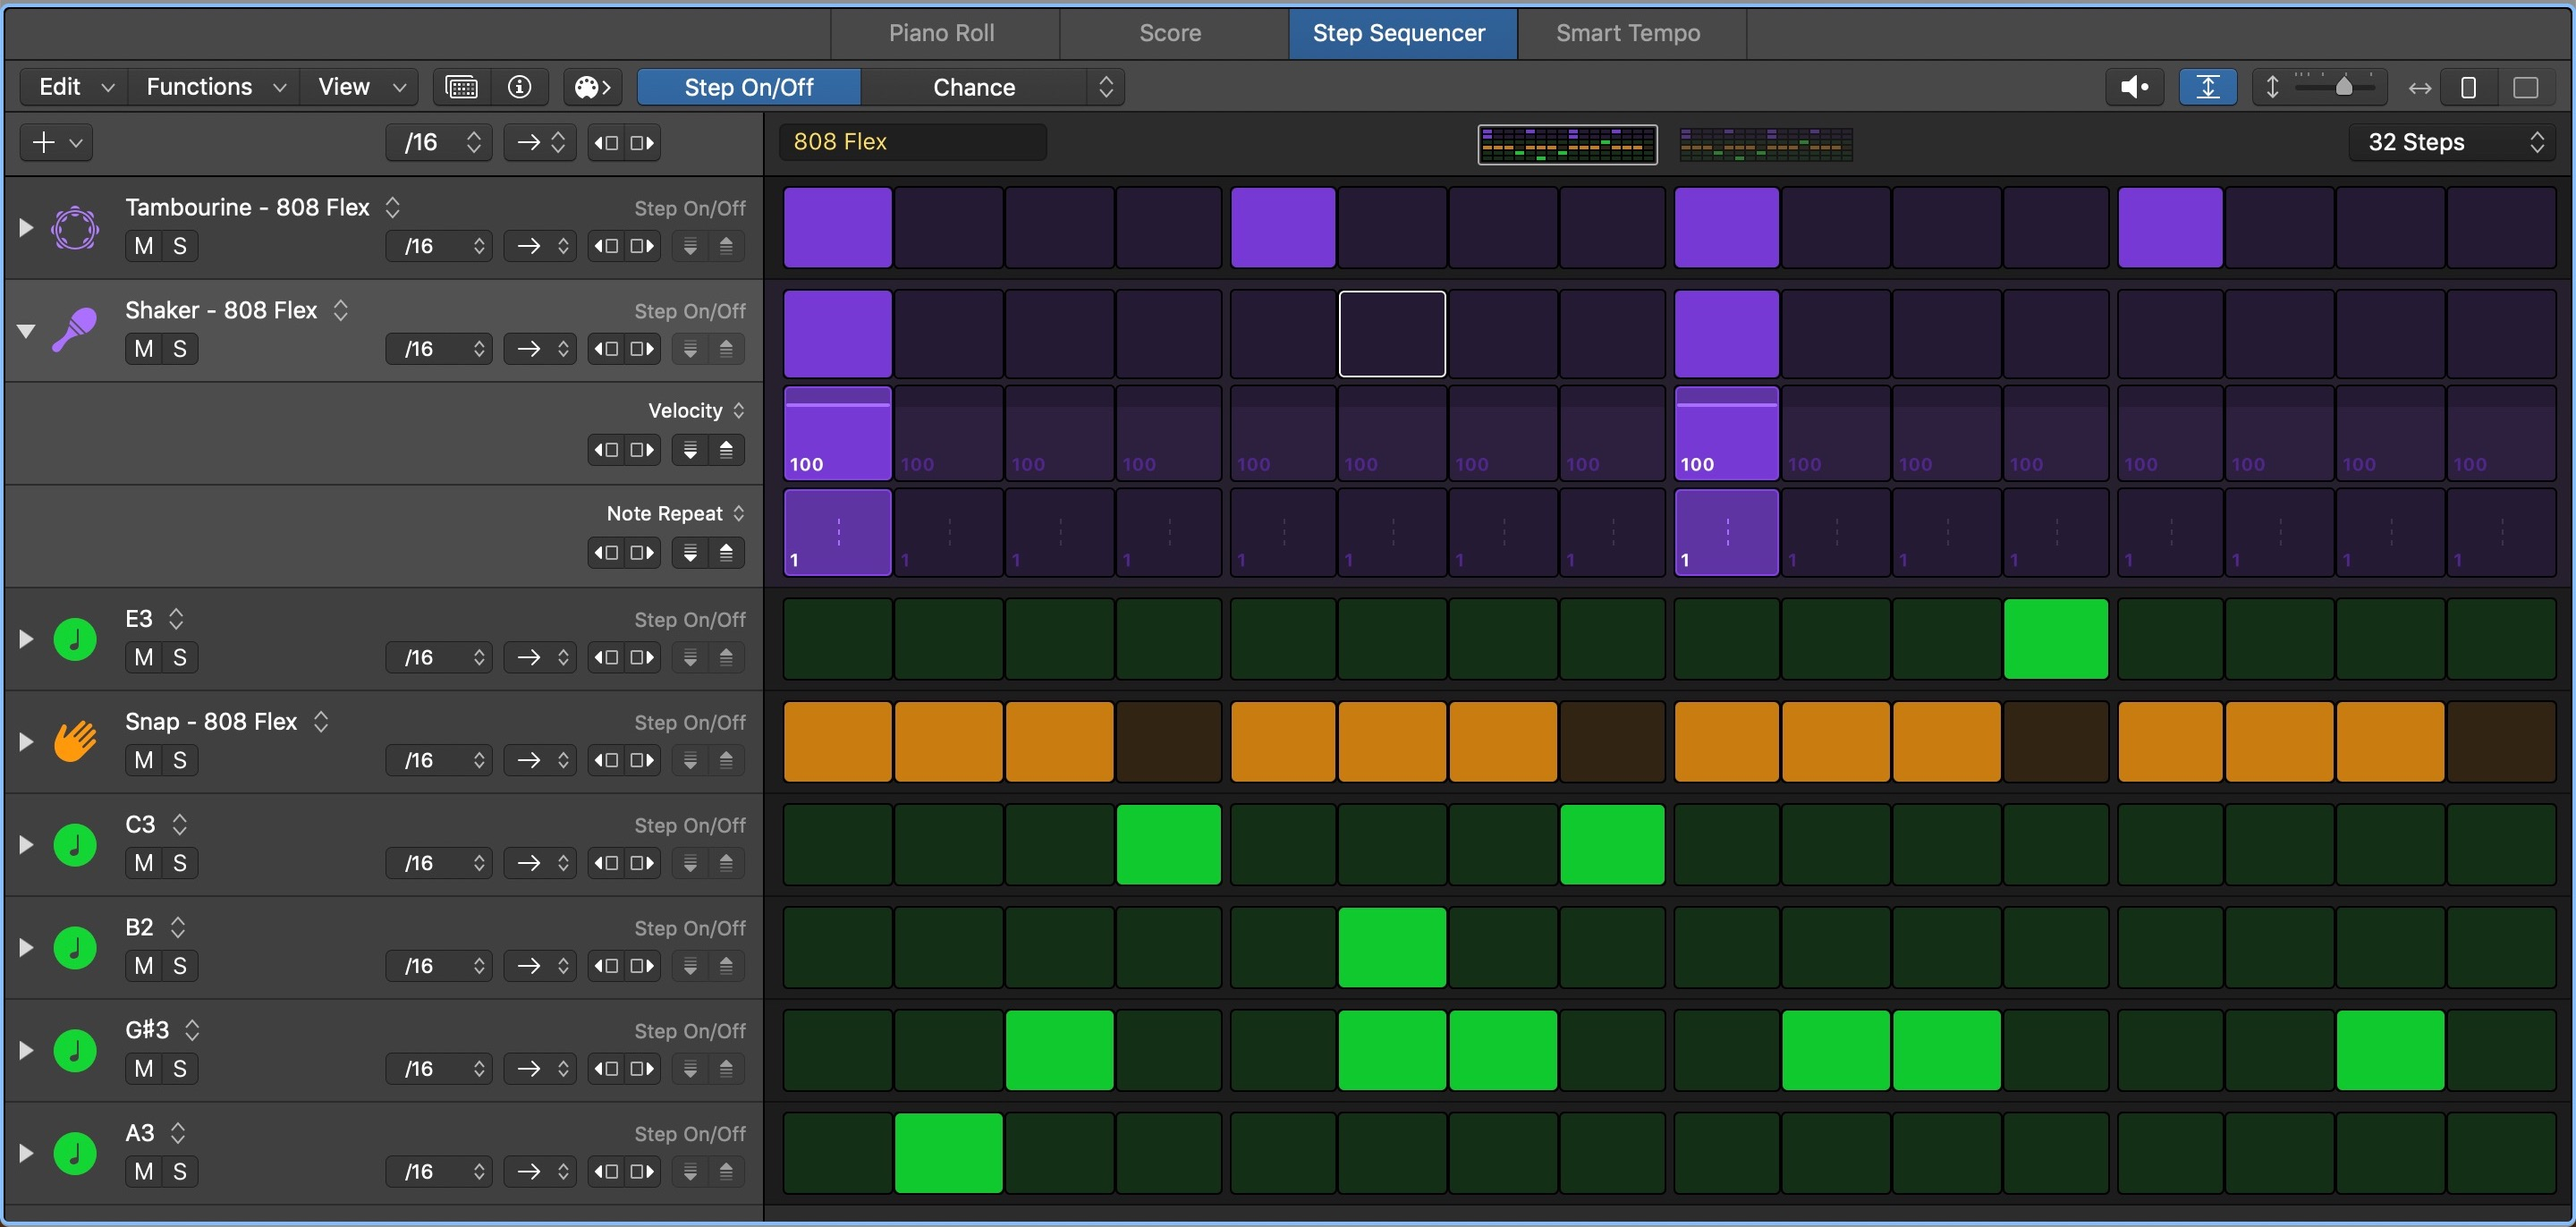 Logic Pro Step Sequencer Interface